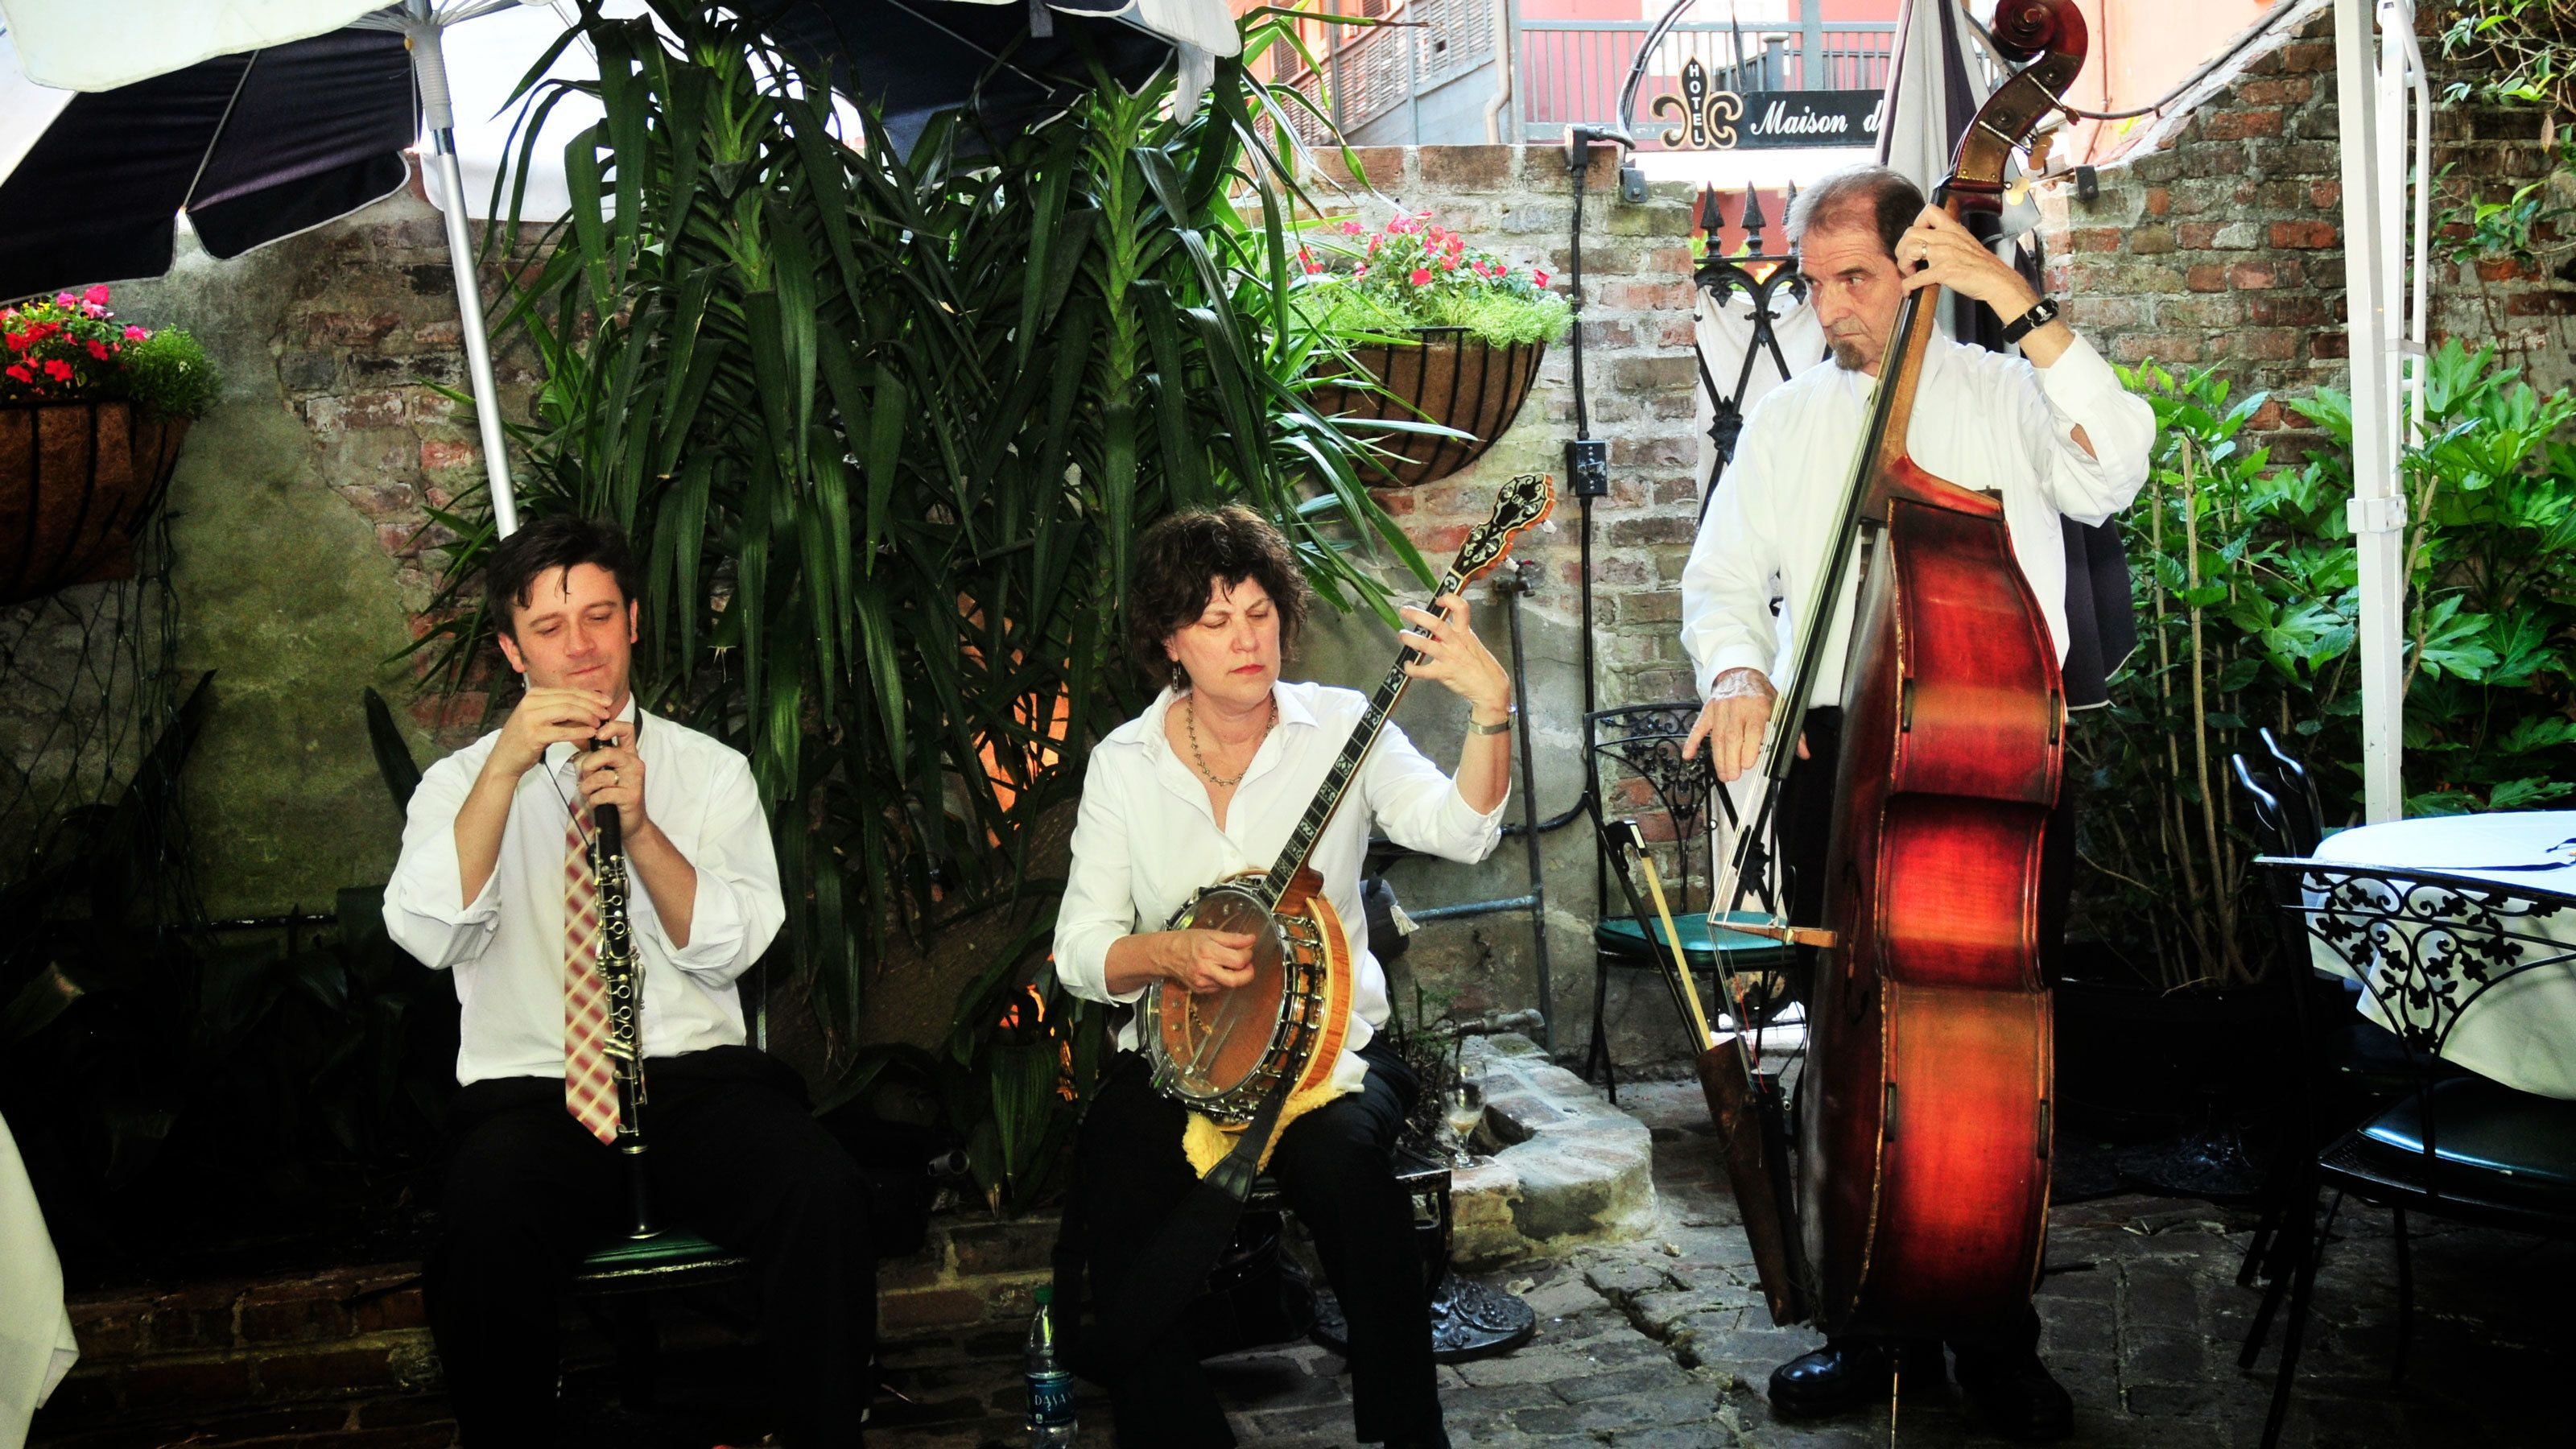 musicians playing outside at Court of Two Sisters in New Orleans